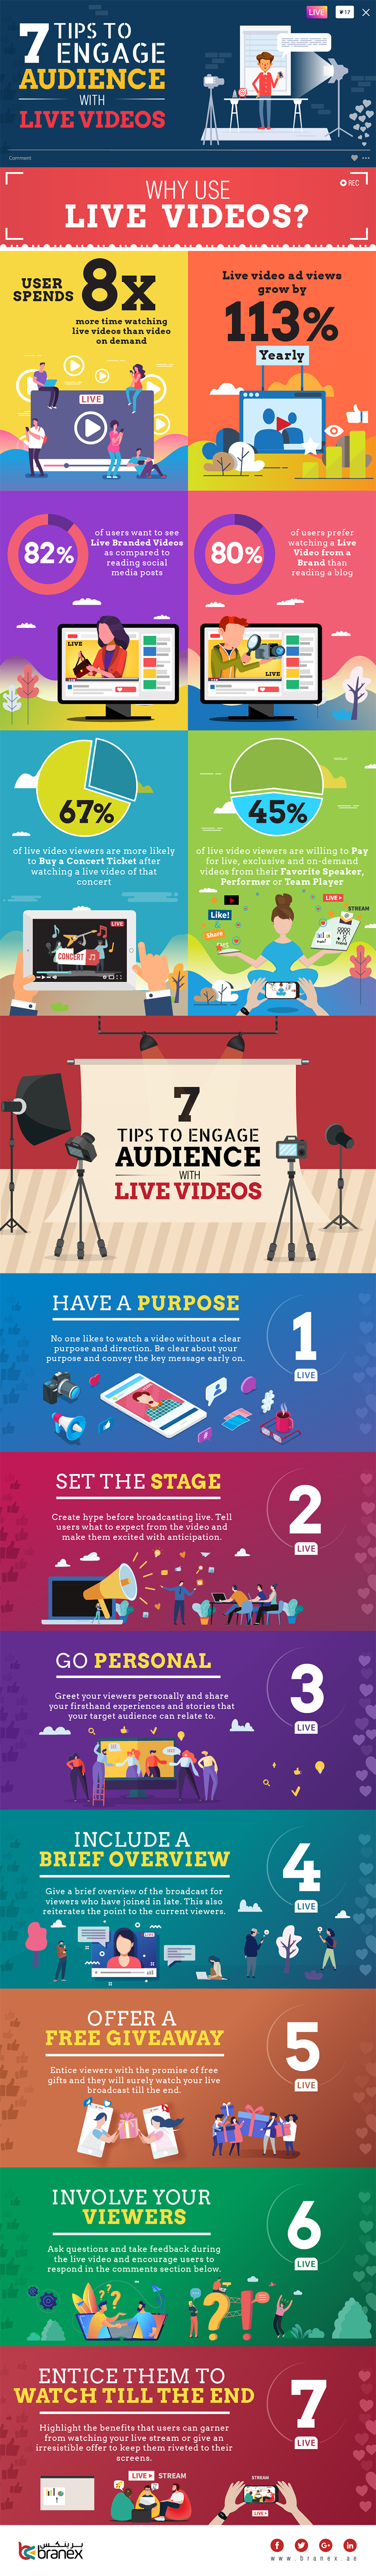 7 live-streaming tips infographic